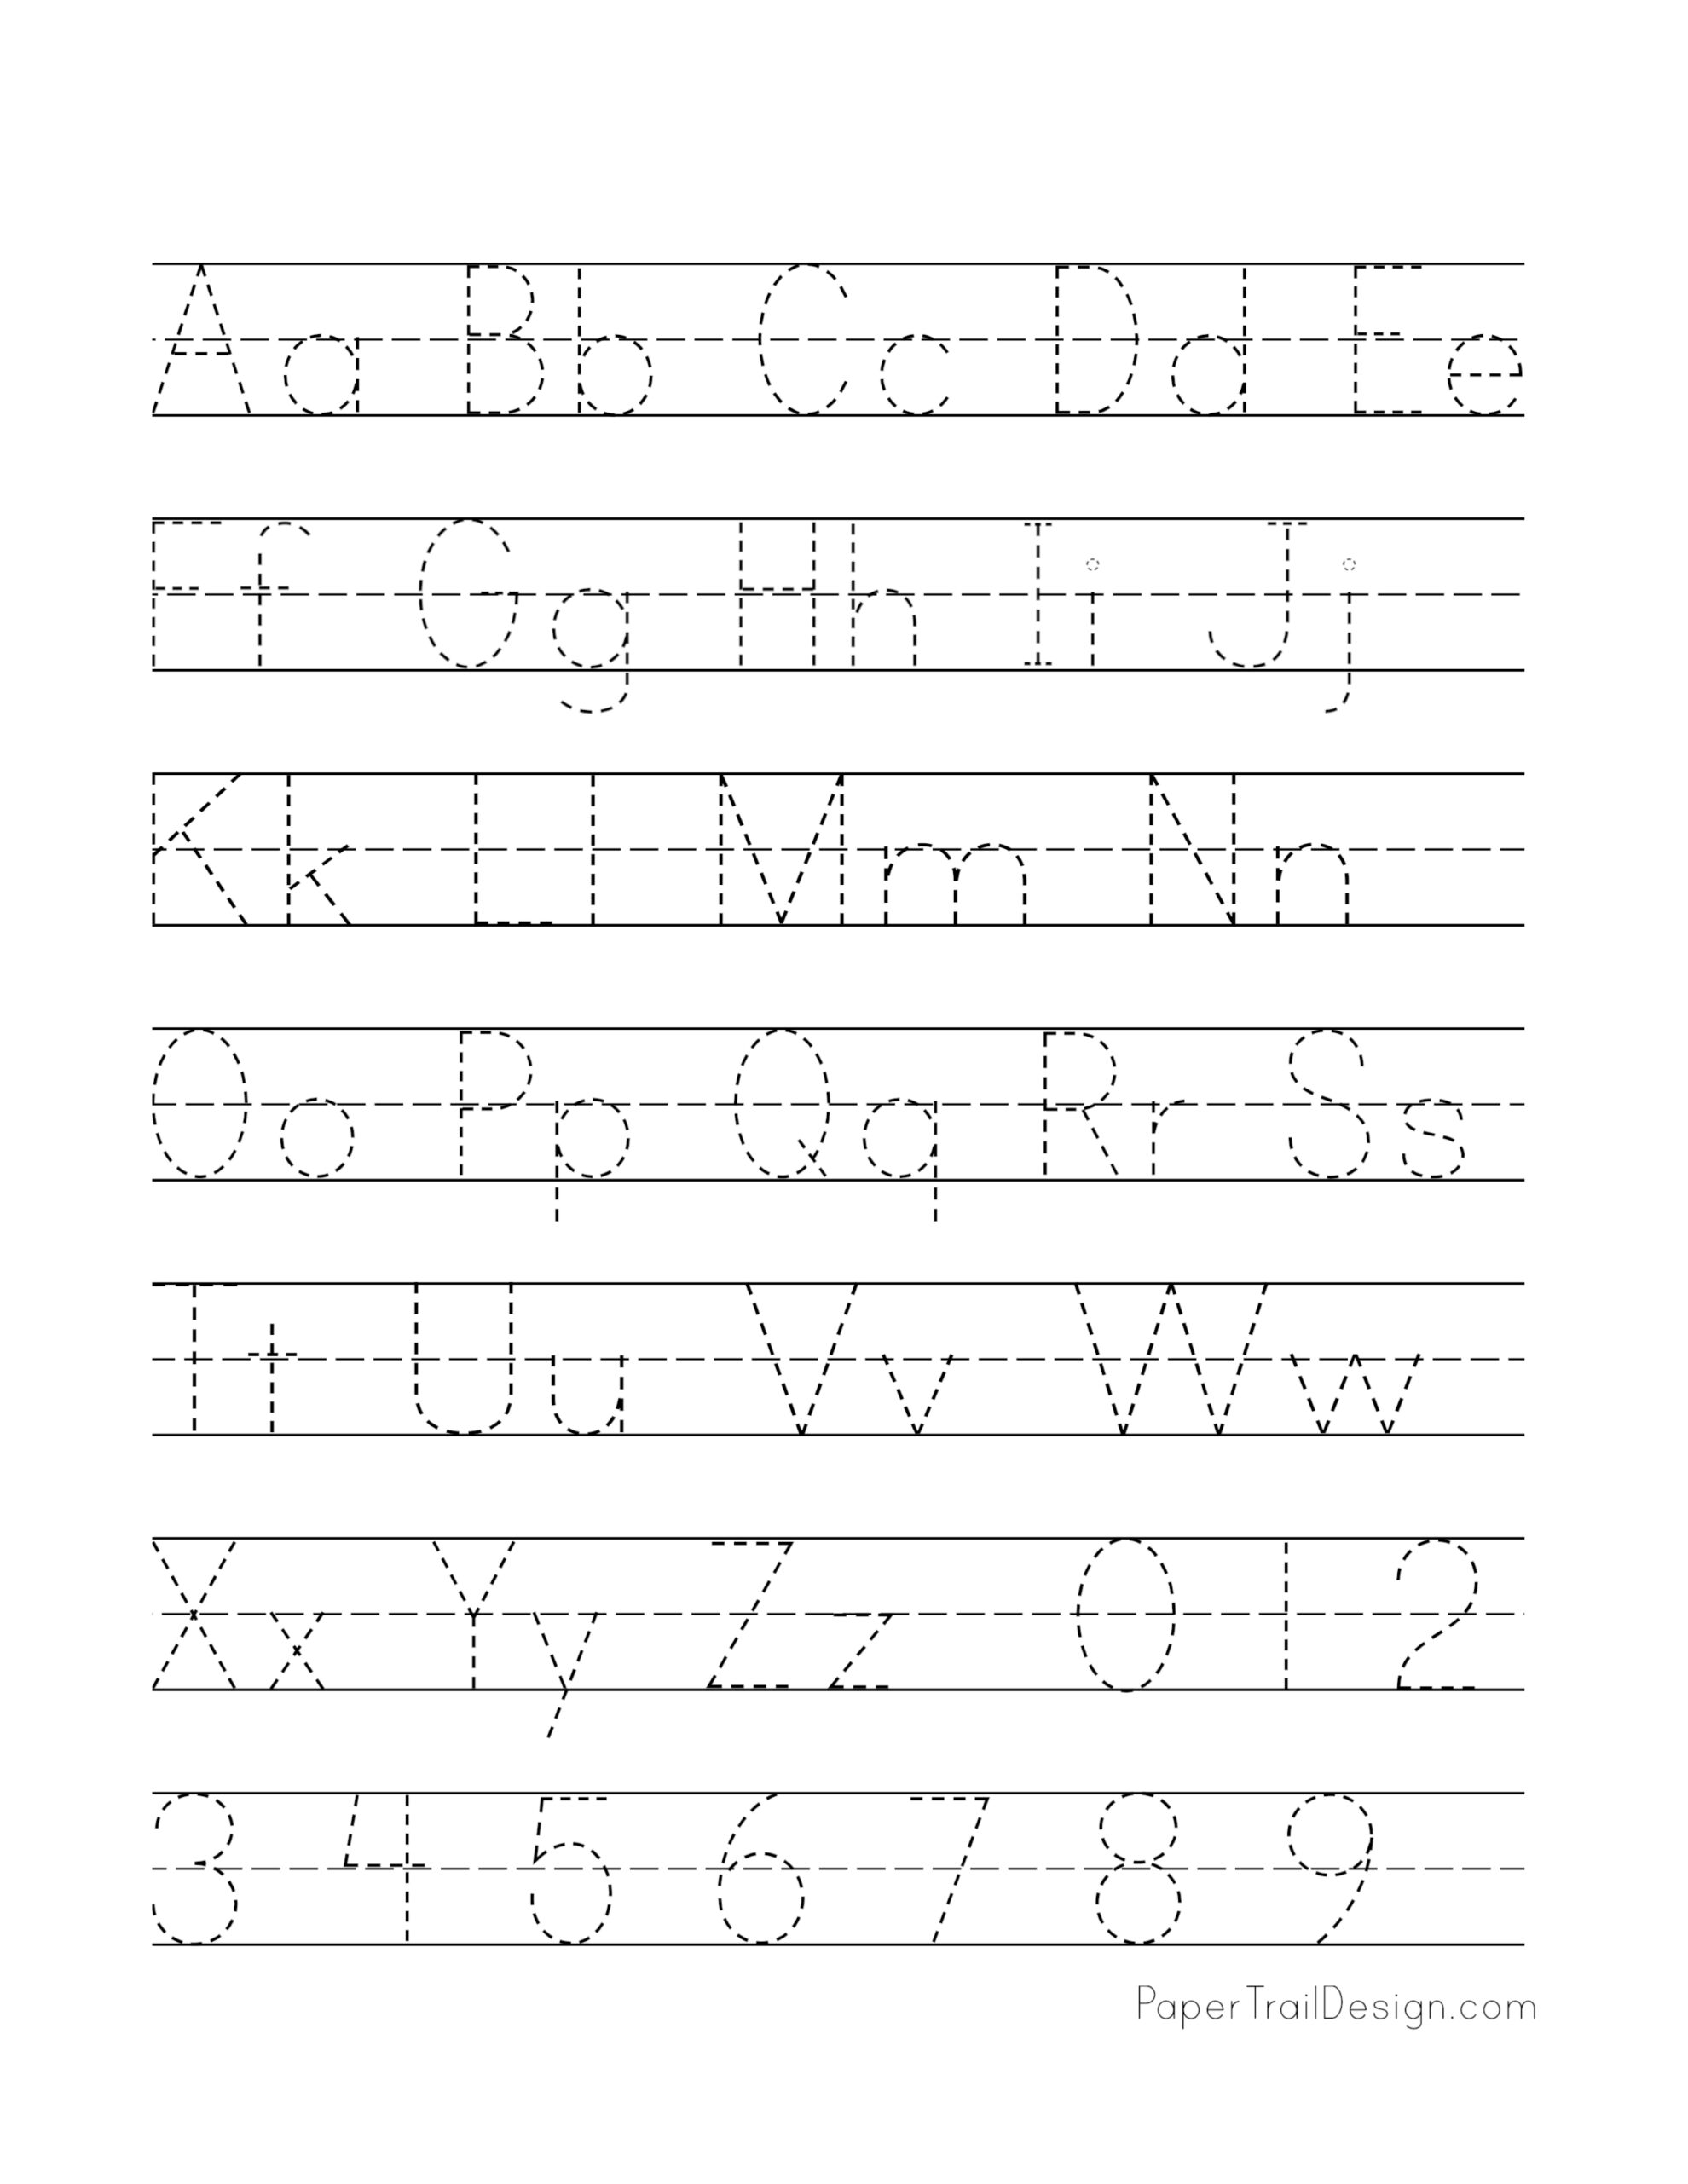 Free Printable Alphabet Handwriting Practice Sheets ...